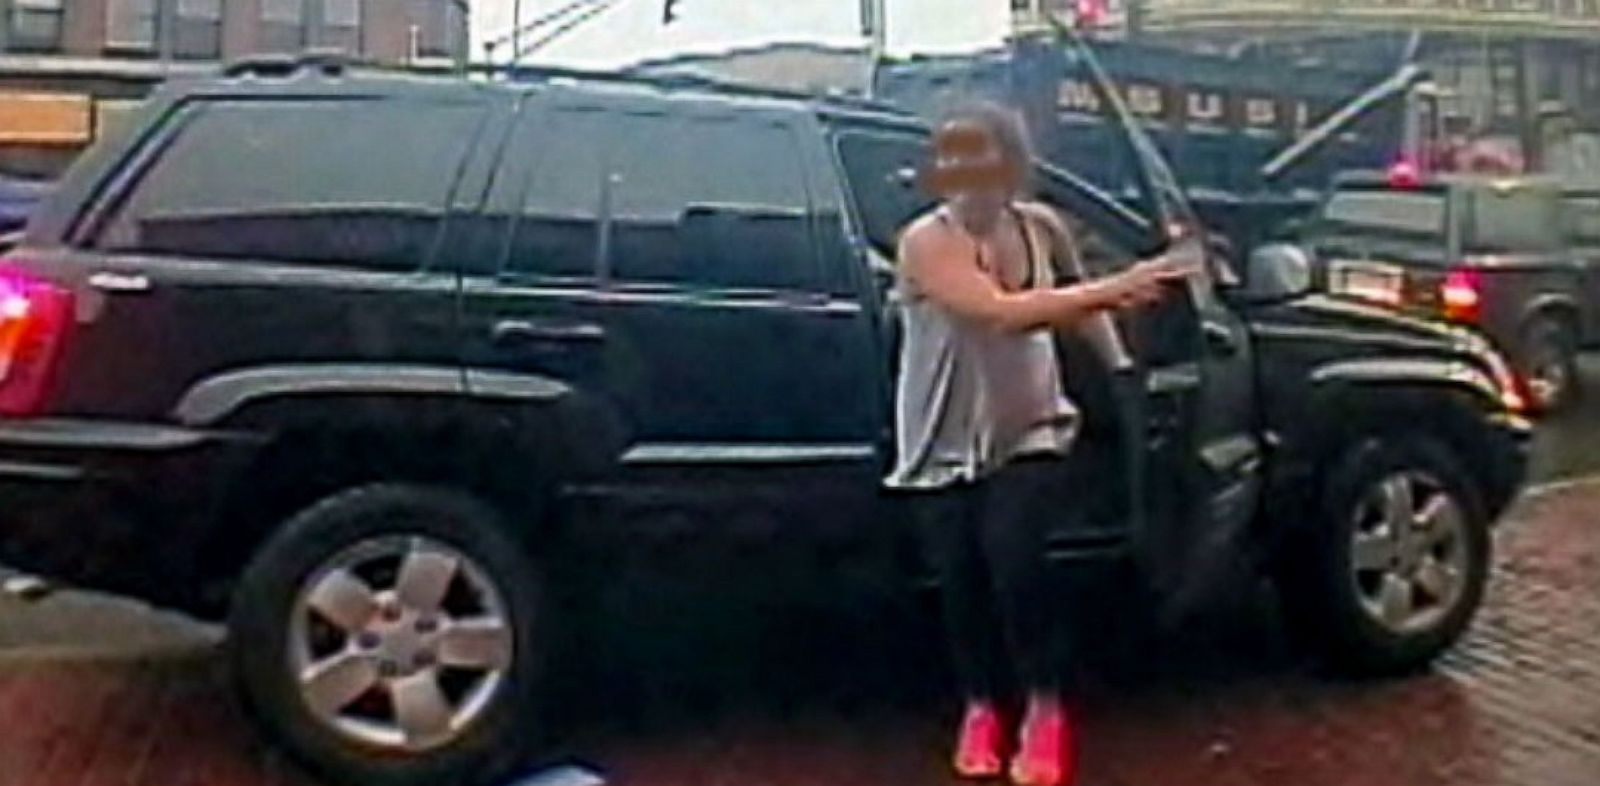 PHOTO: Amy Lord, police say, was kidnapped, forced to withdraw money from several banks, and then killed.